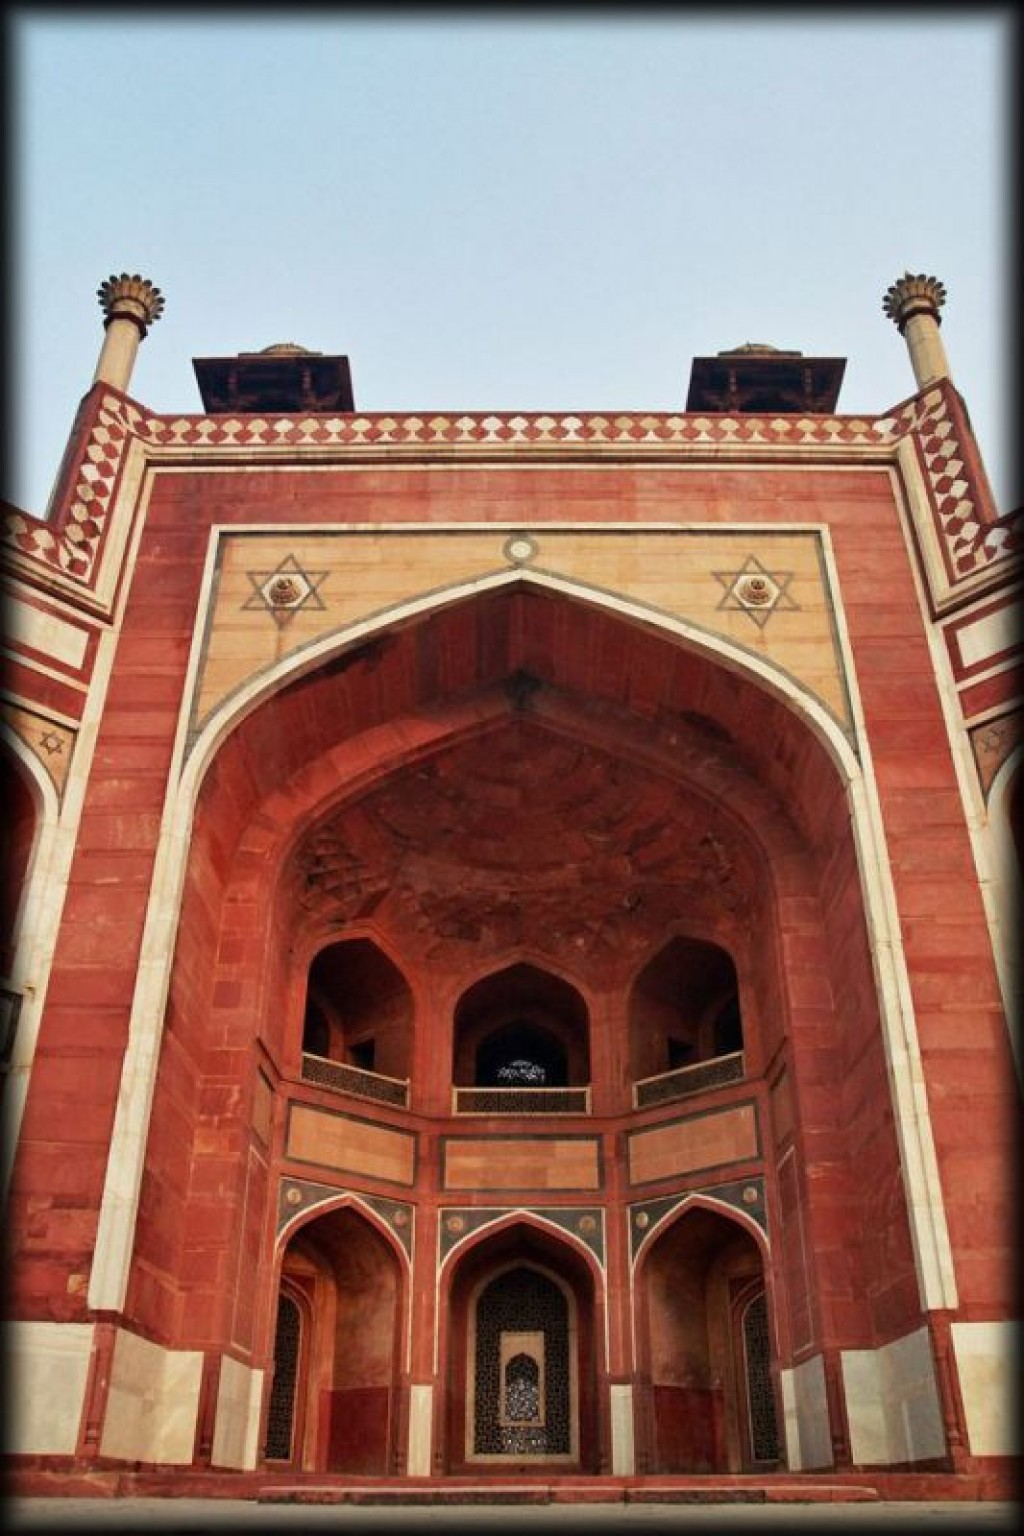 The Red Fort was the highlight of our visit to Old Delhi.